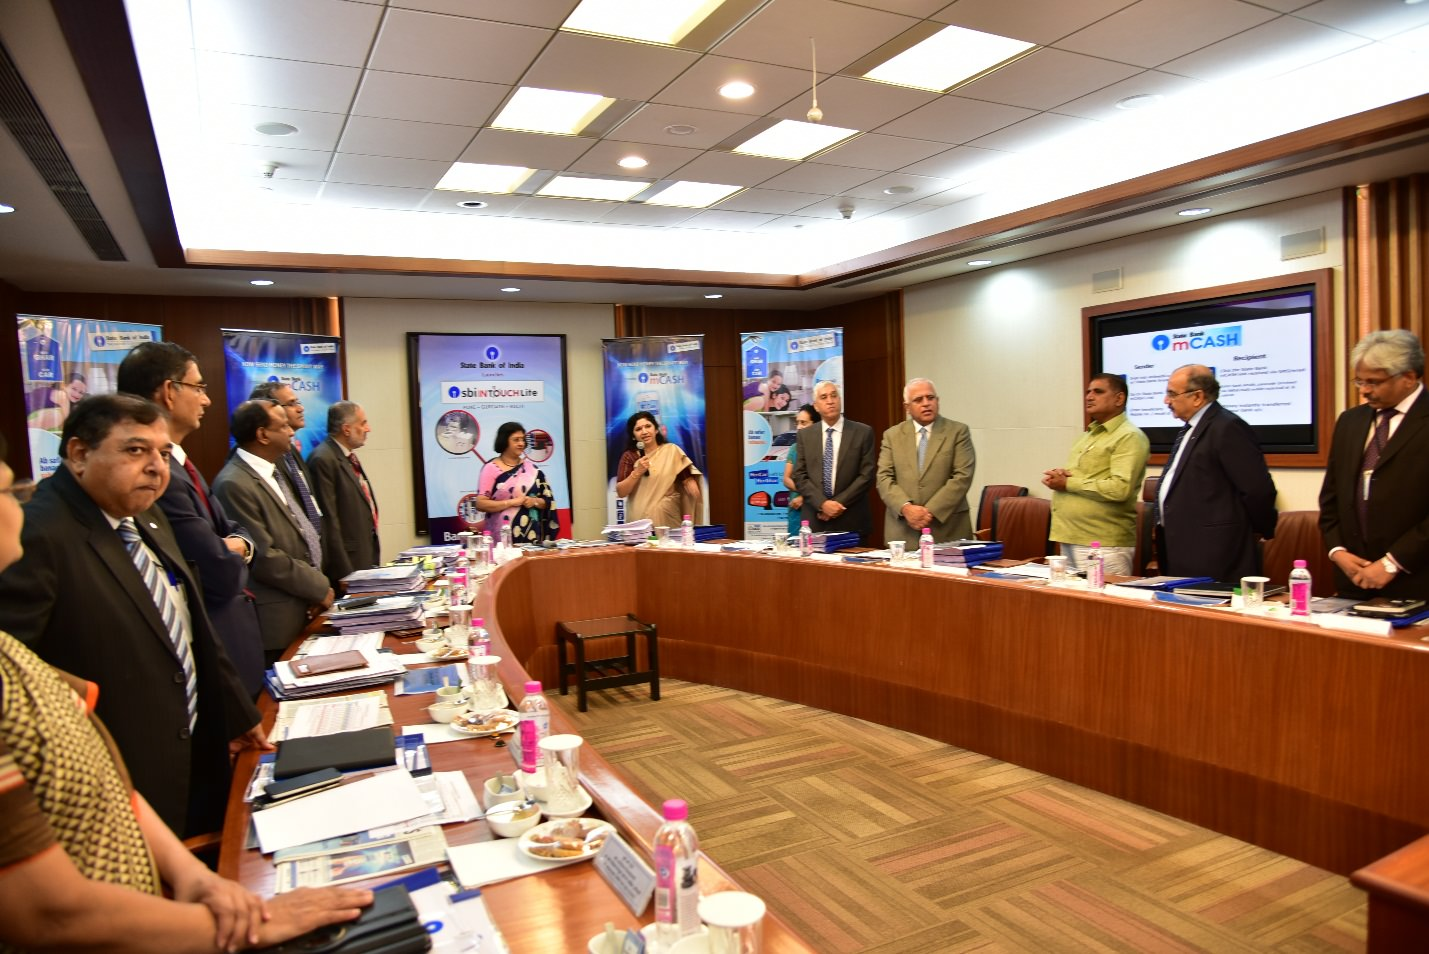 Photo caption: Smt. Arundhati Bhattacharya, Chairman, SBI and top management of the Bank at the launch ceremony of State Bank mCASH.